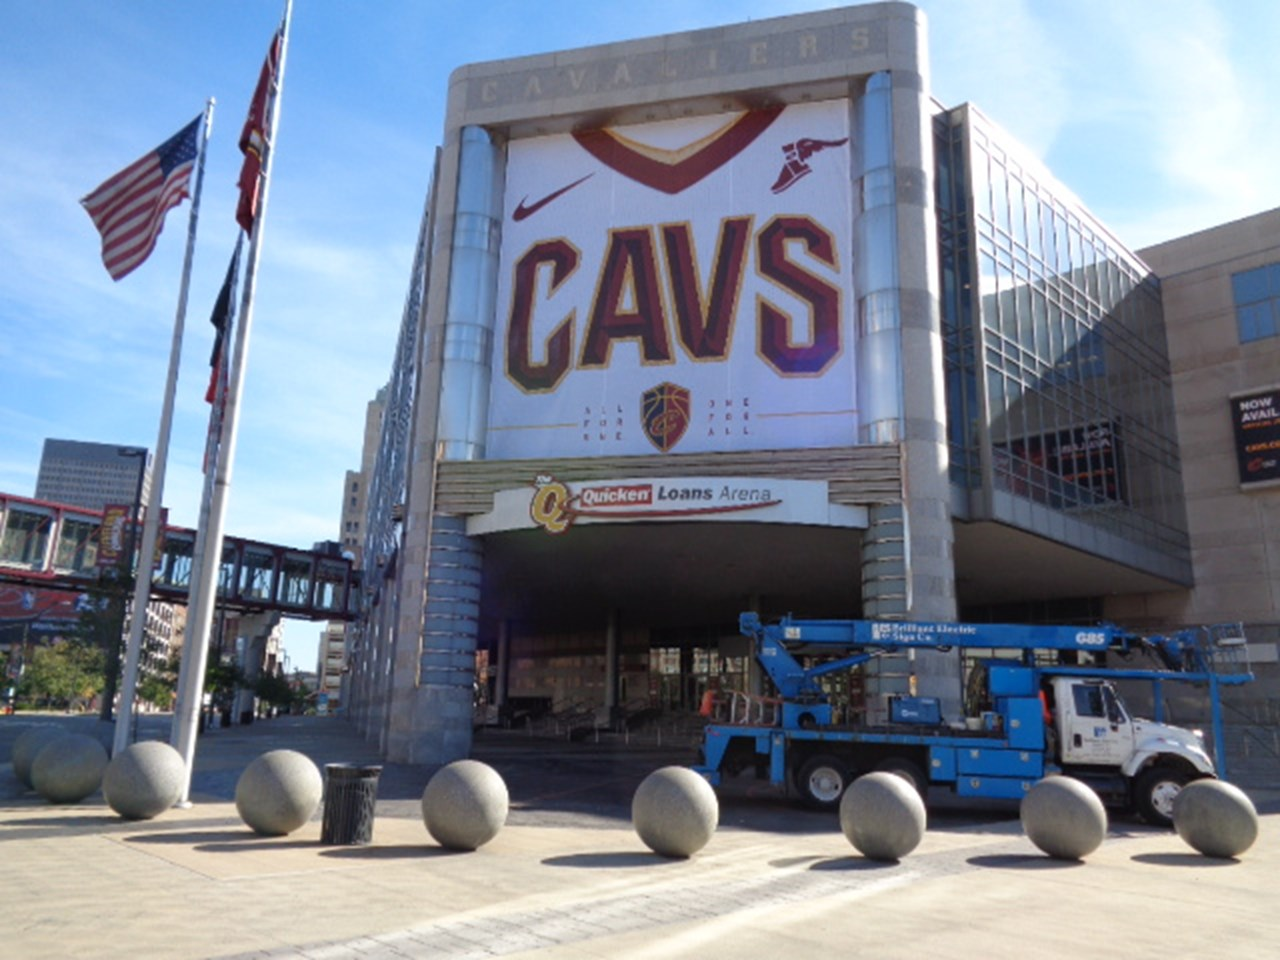 Sports- Facility- The Q Arena- Cavs